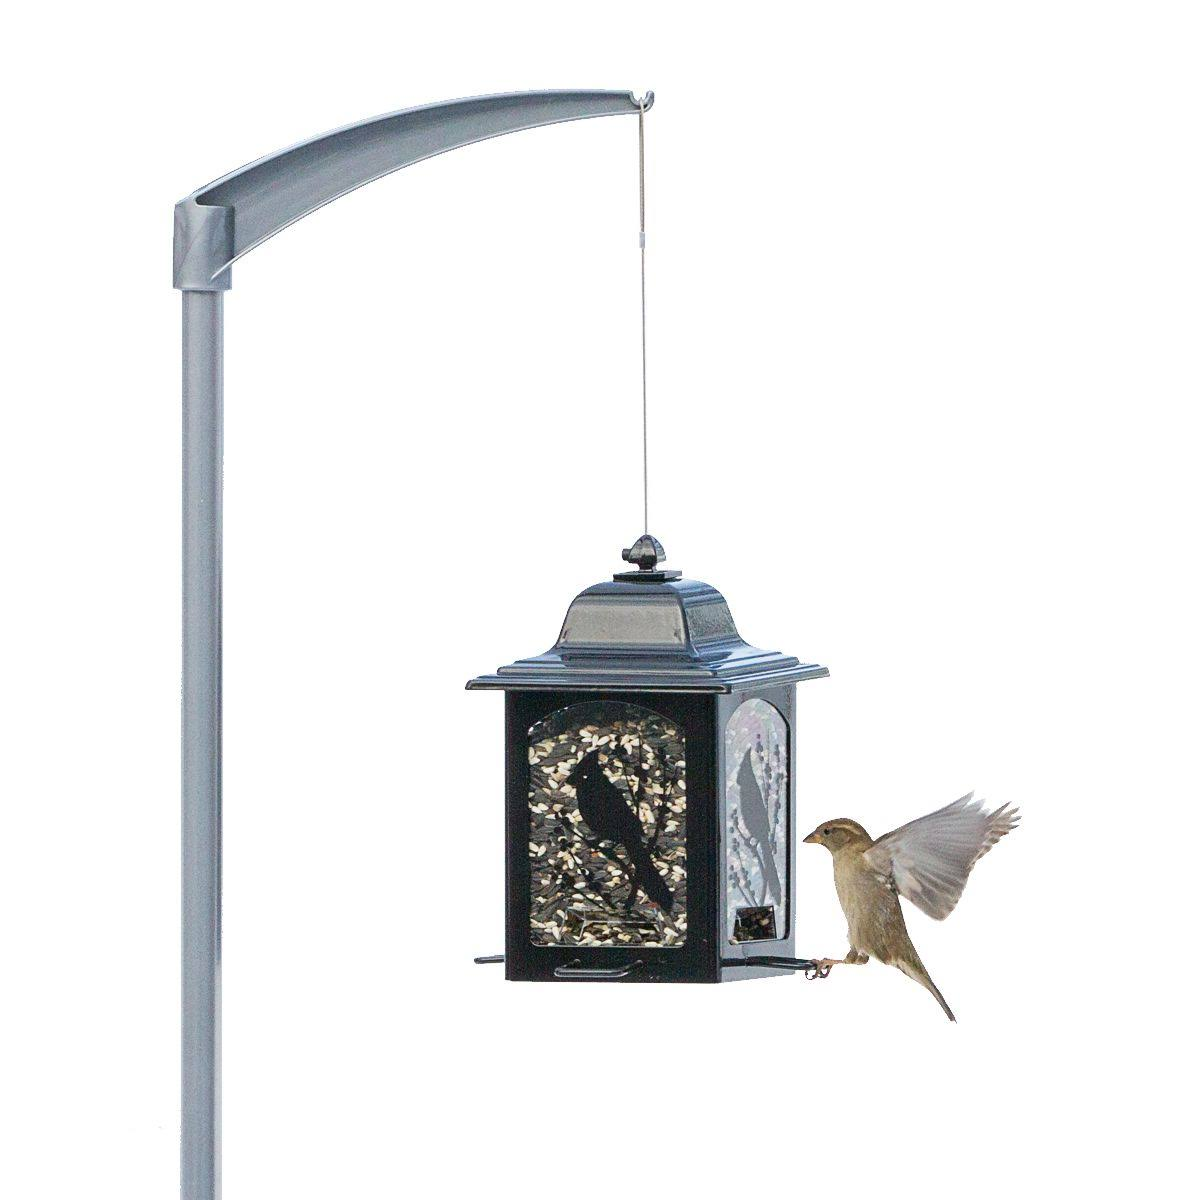 "Perky-Pet 5107-4 Universal Bird Feeder Pole - 84"" H"